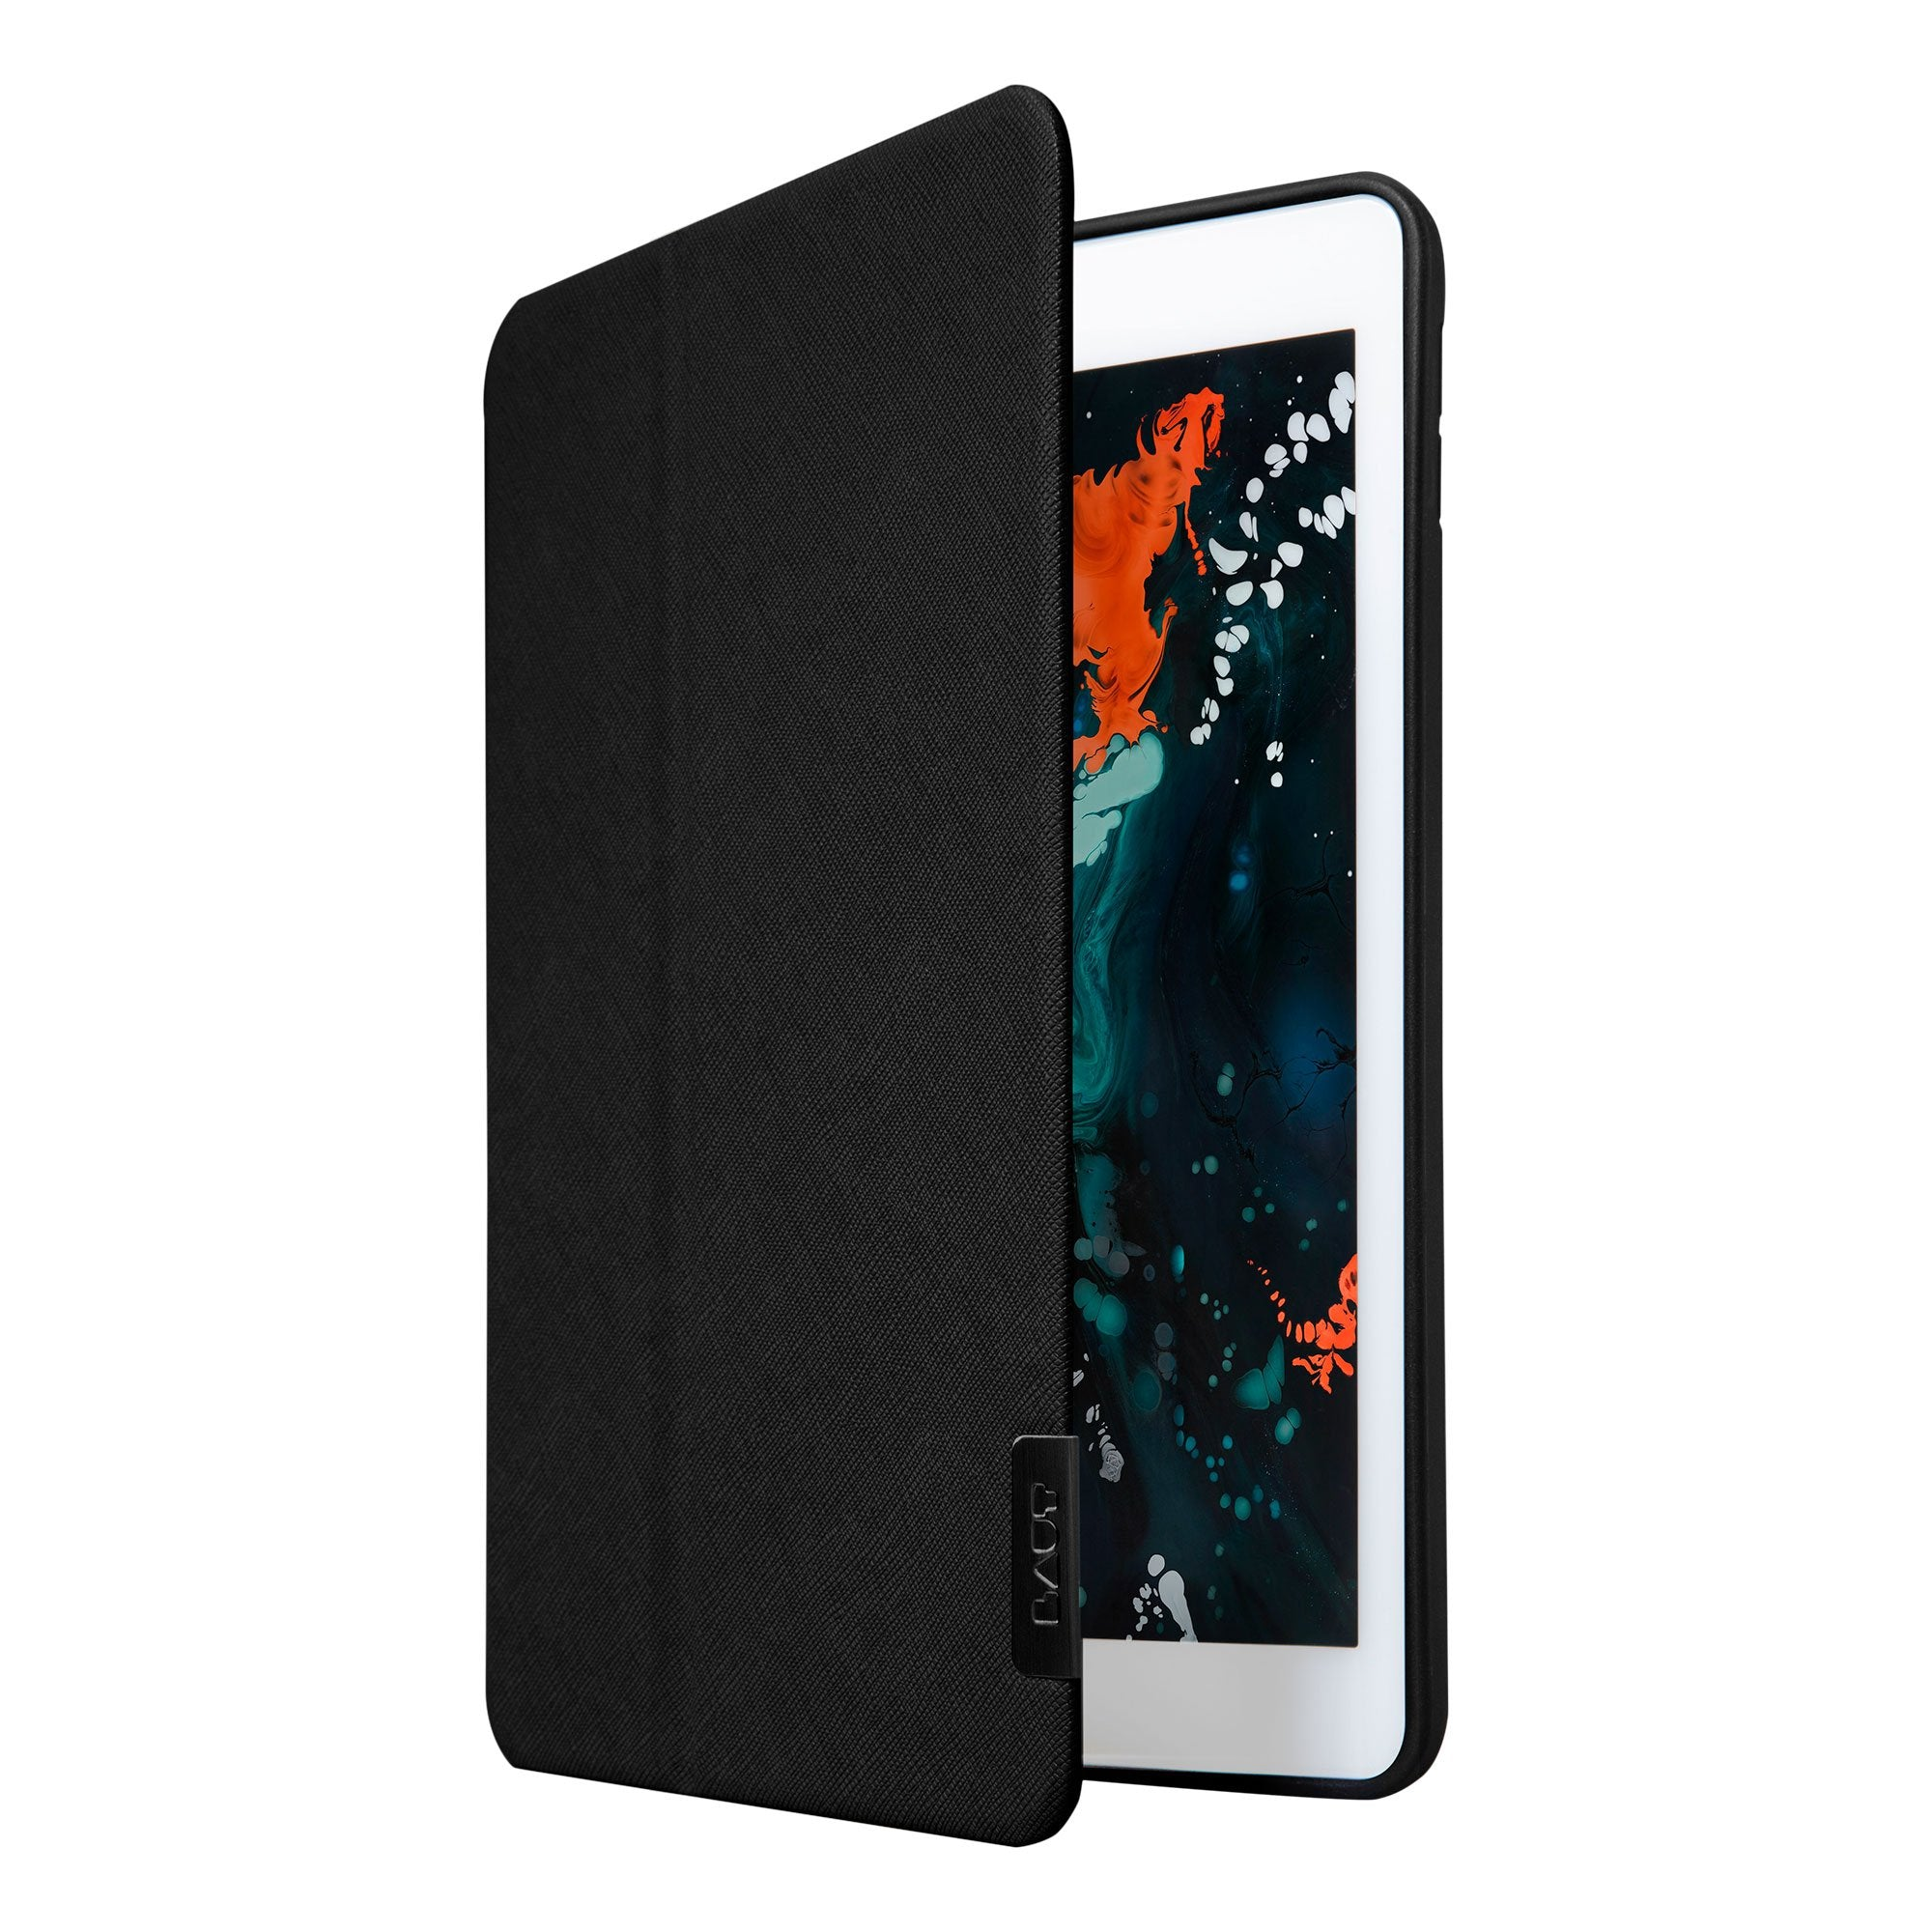 PRESTIGE Folio for iPad mini 5 - LAUT Japan